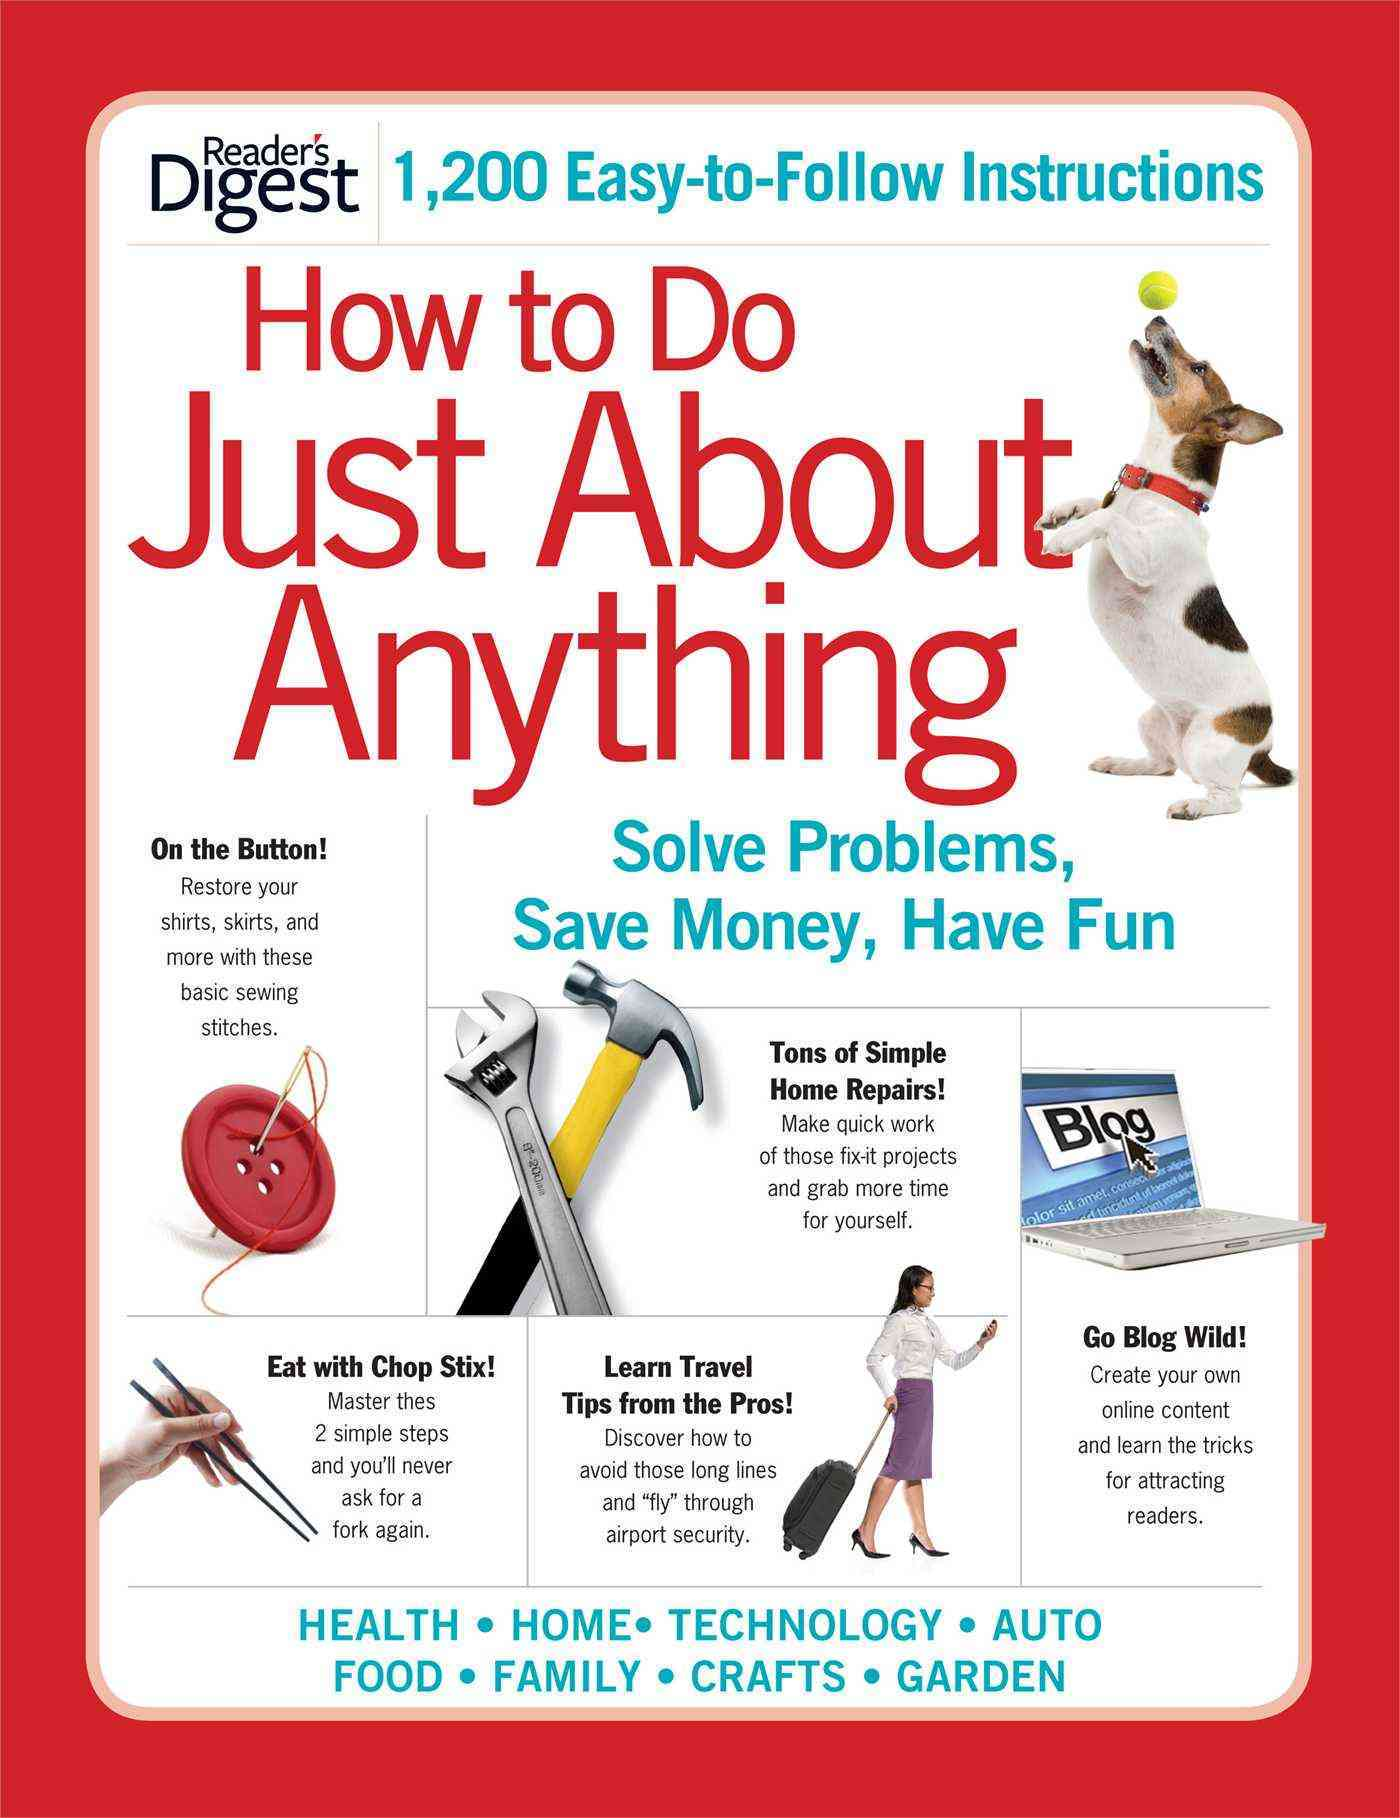 How to Do Just About Anything: Solve Problems, Save Money, Have Fun (Paperback)